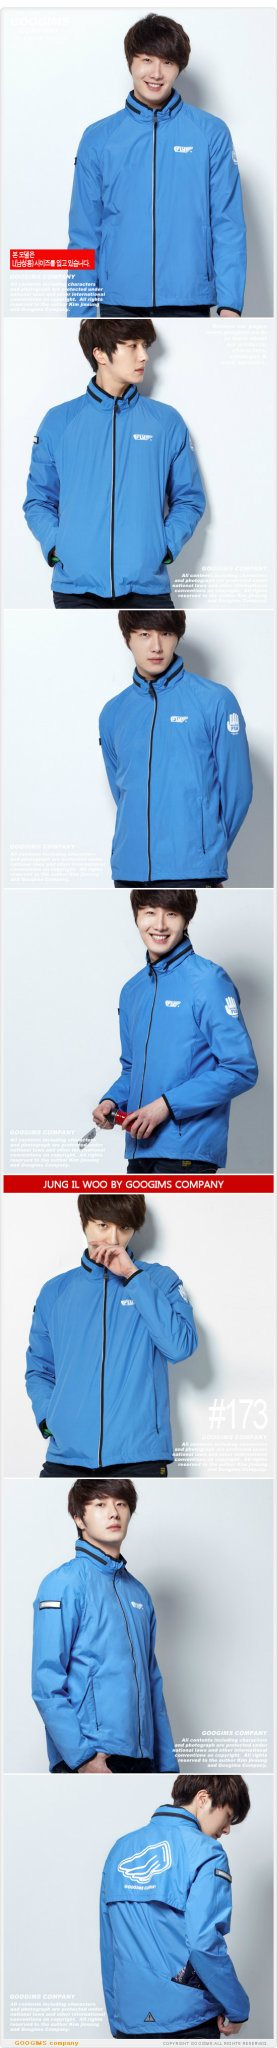 2011 10 Jung II-woo for Googims. Part 100013